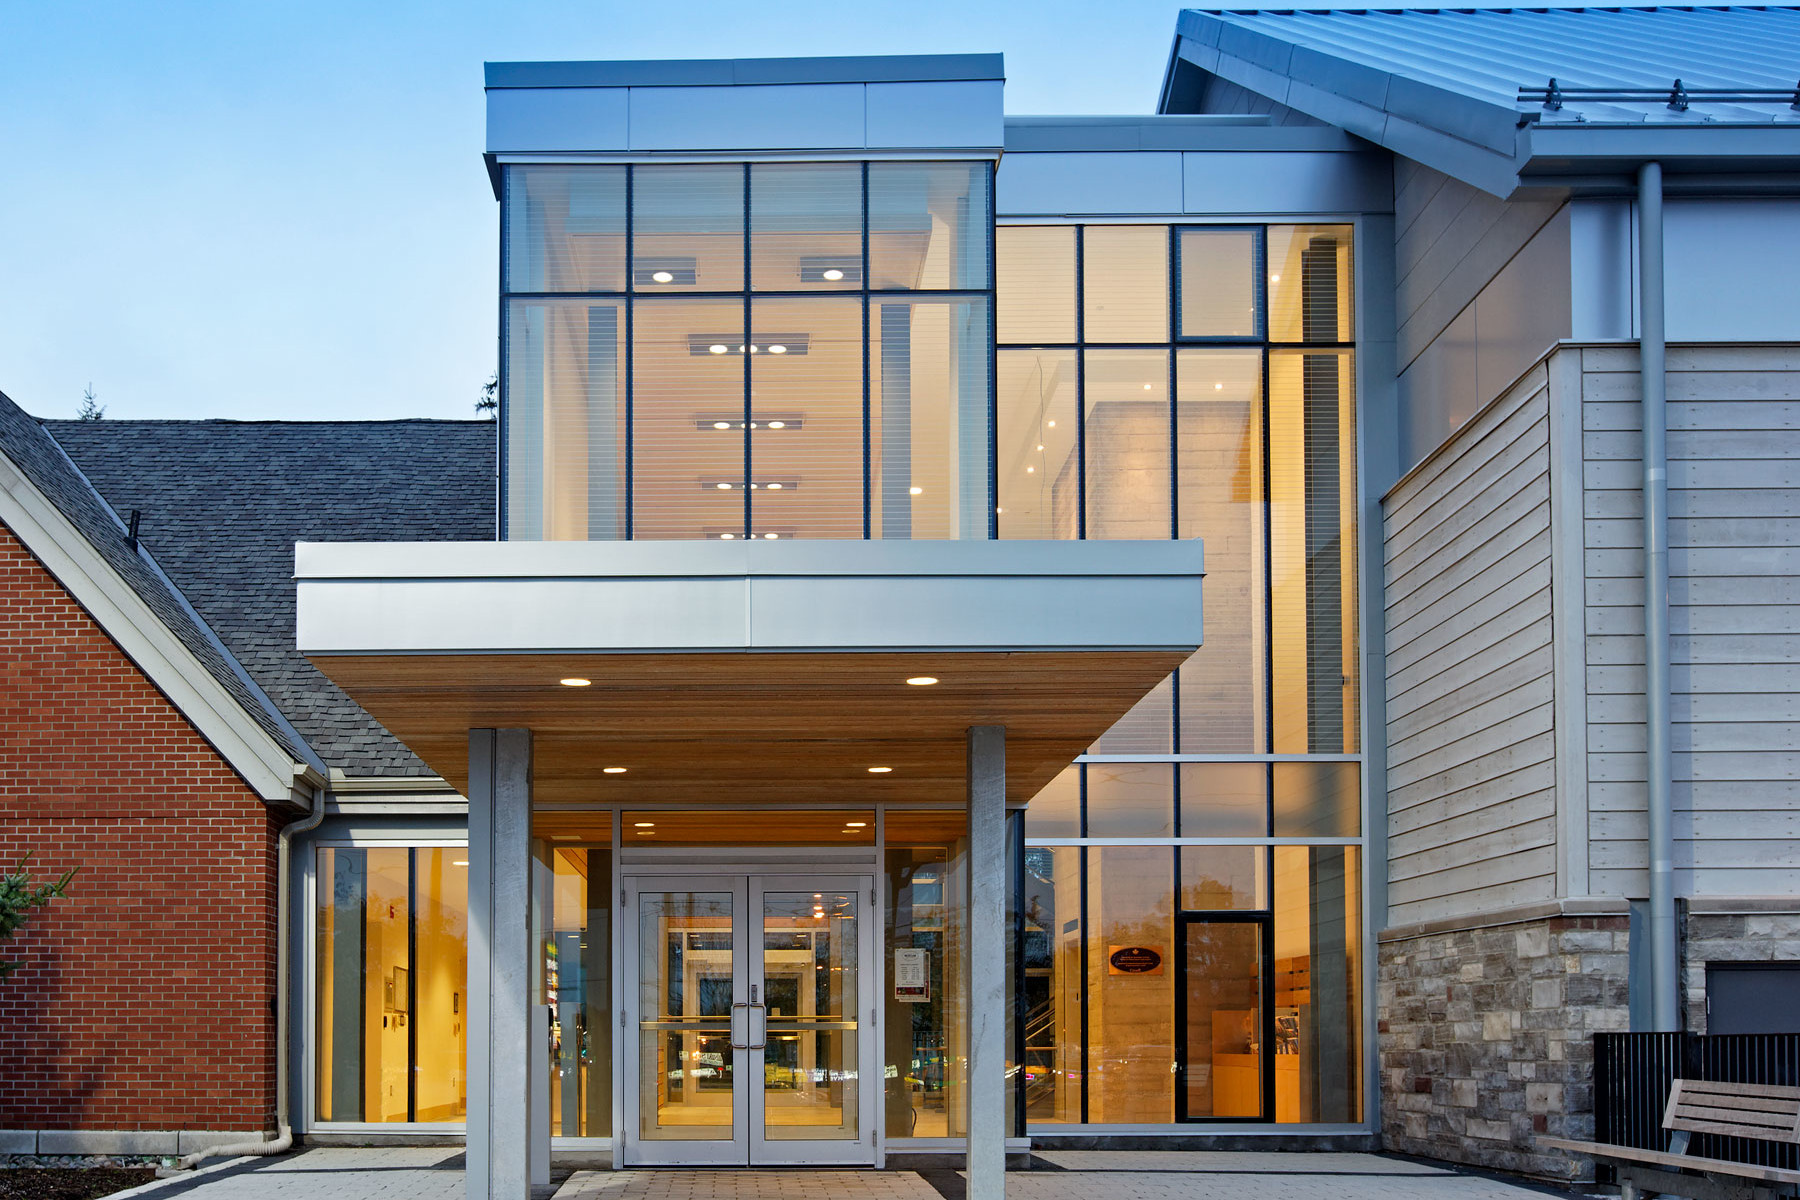 Illuminated glazed front entrance with wood and steel cantilever roof at dusk